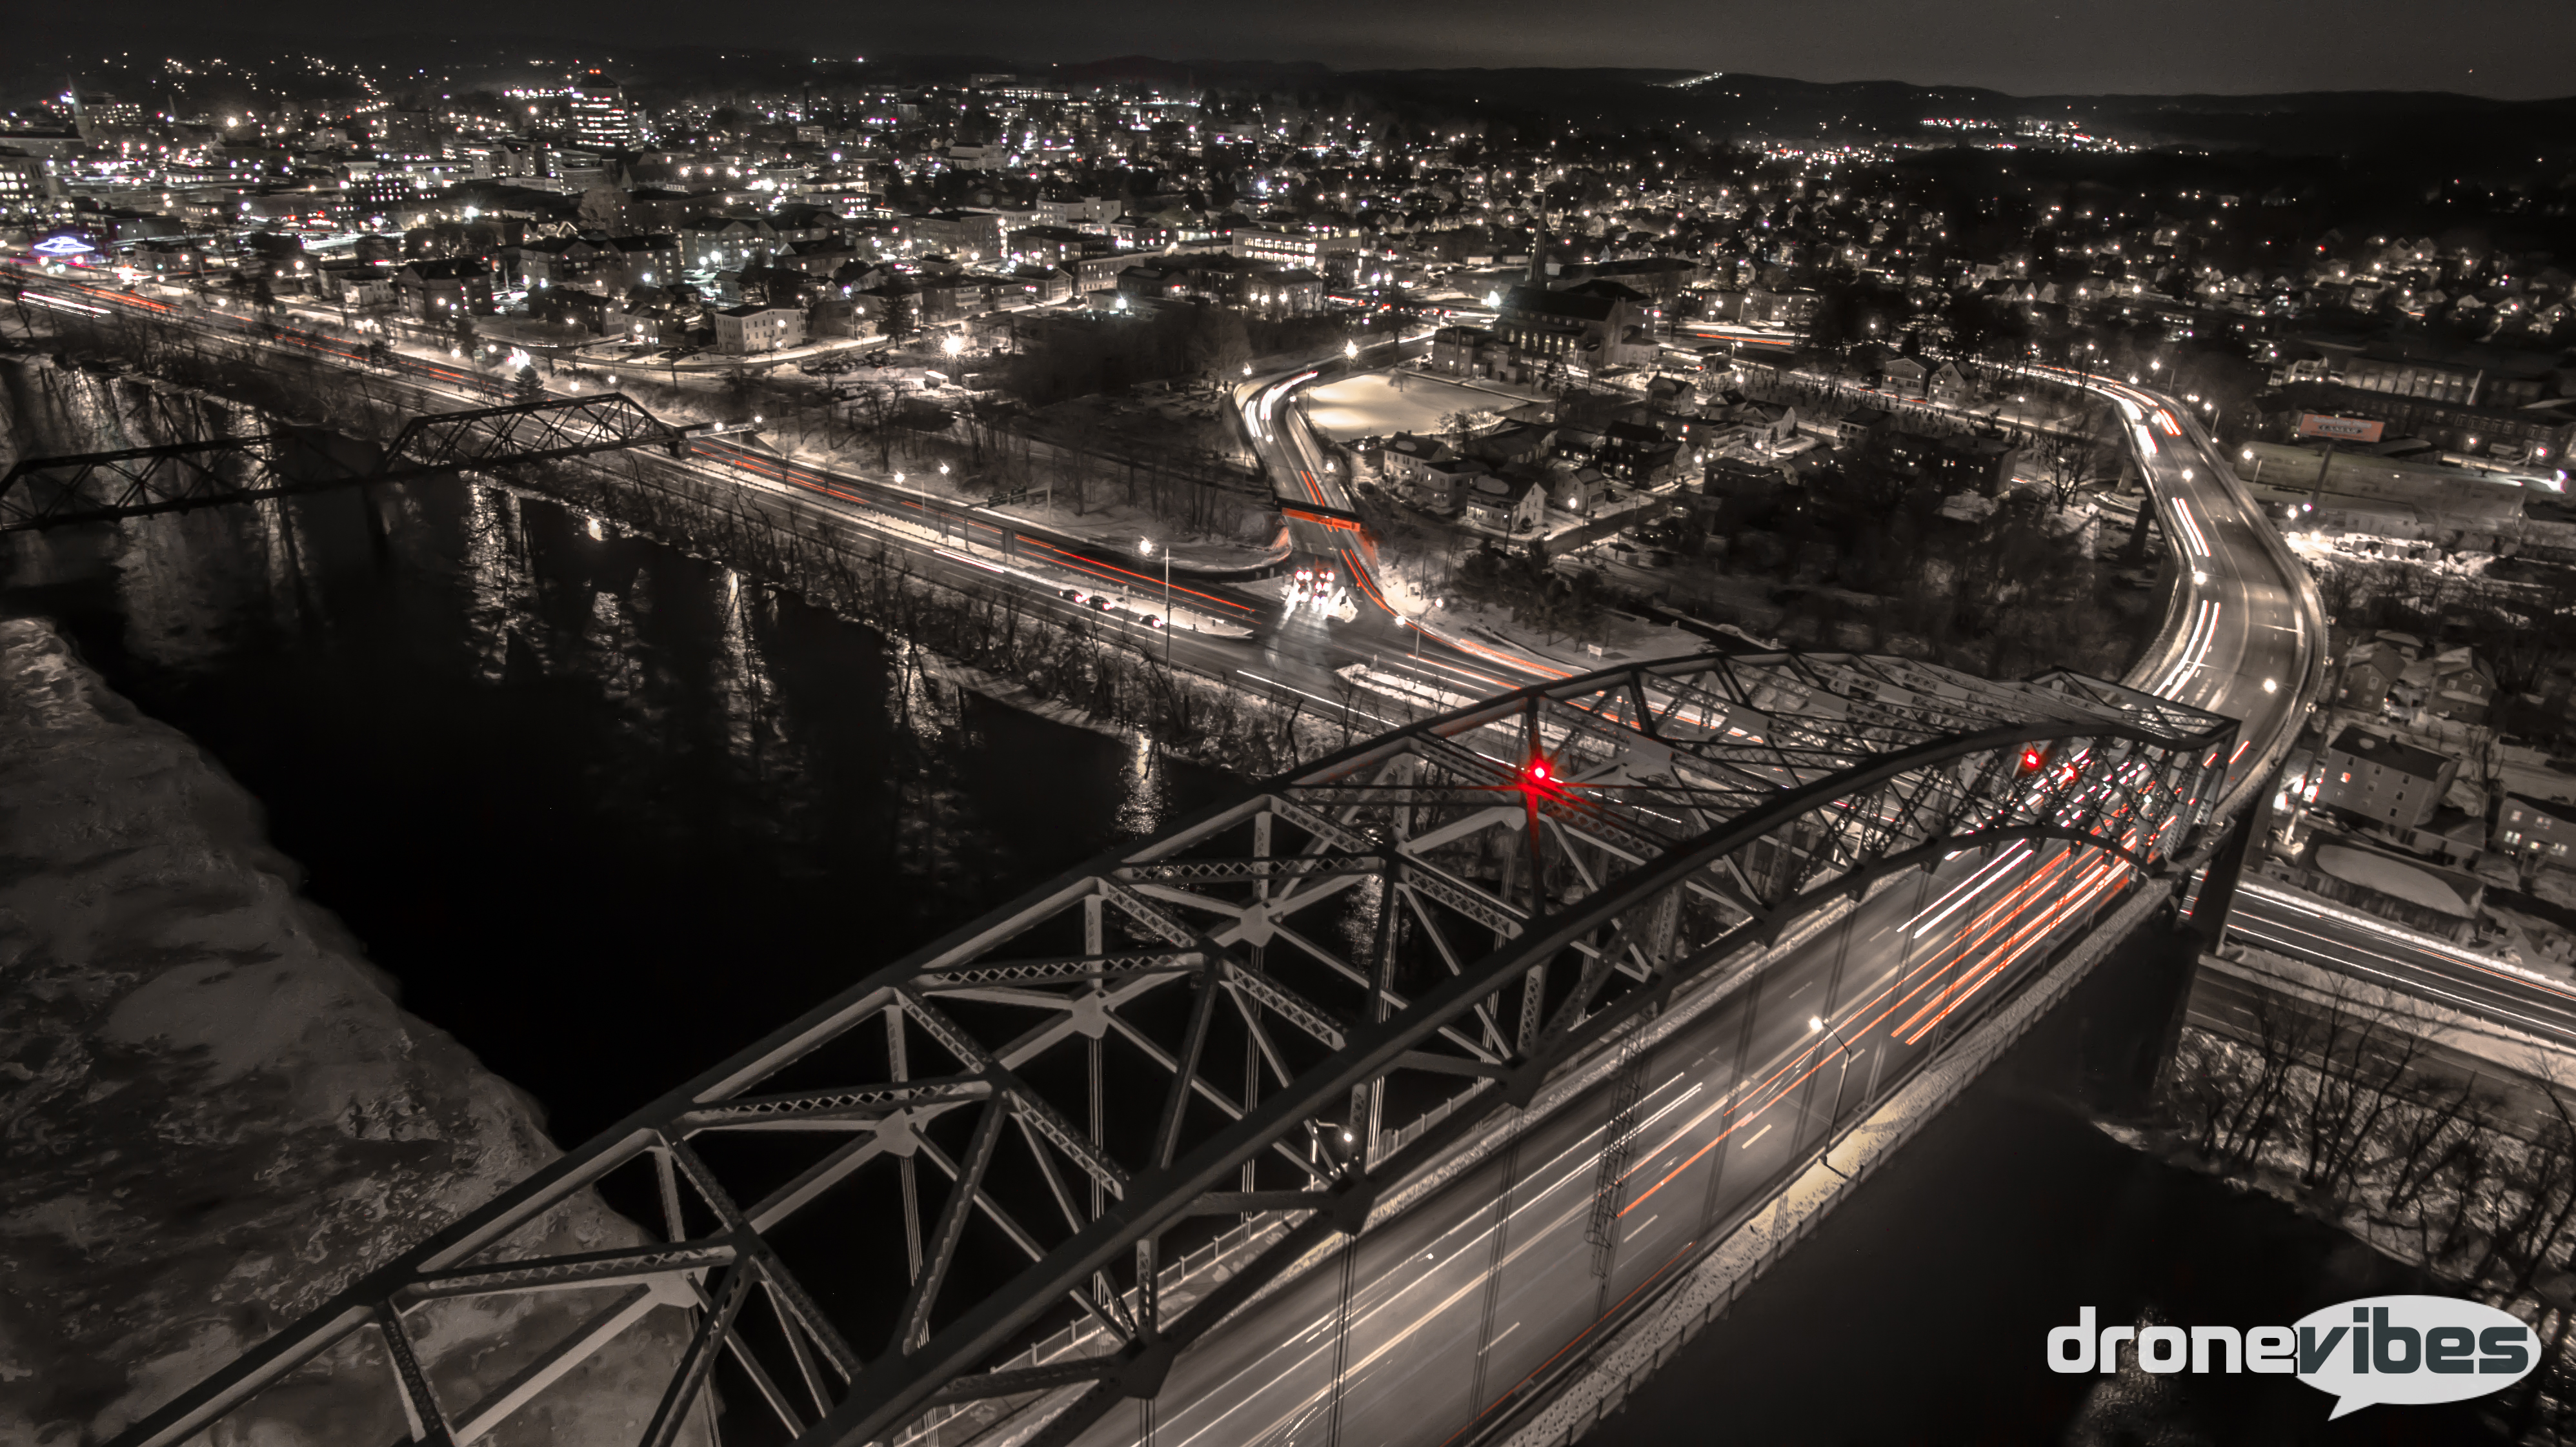 Learn How This Phantom3 Long Exposure Photo Got Its Great Gotham Style